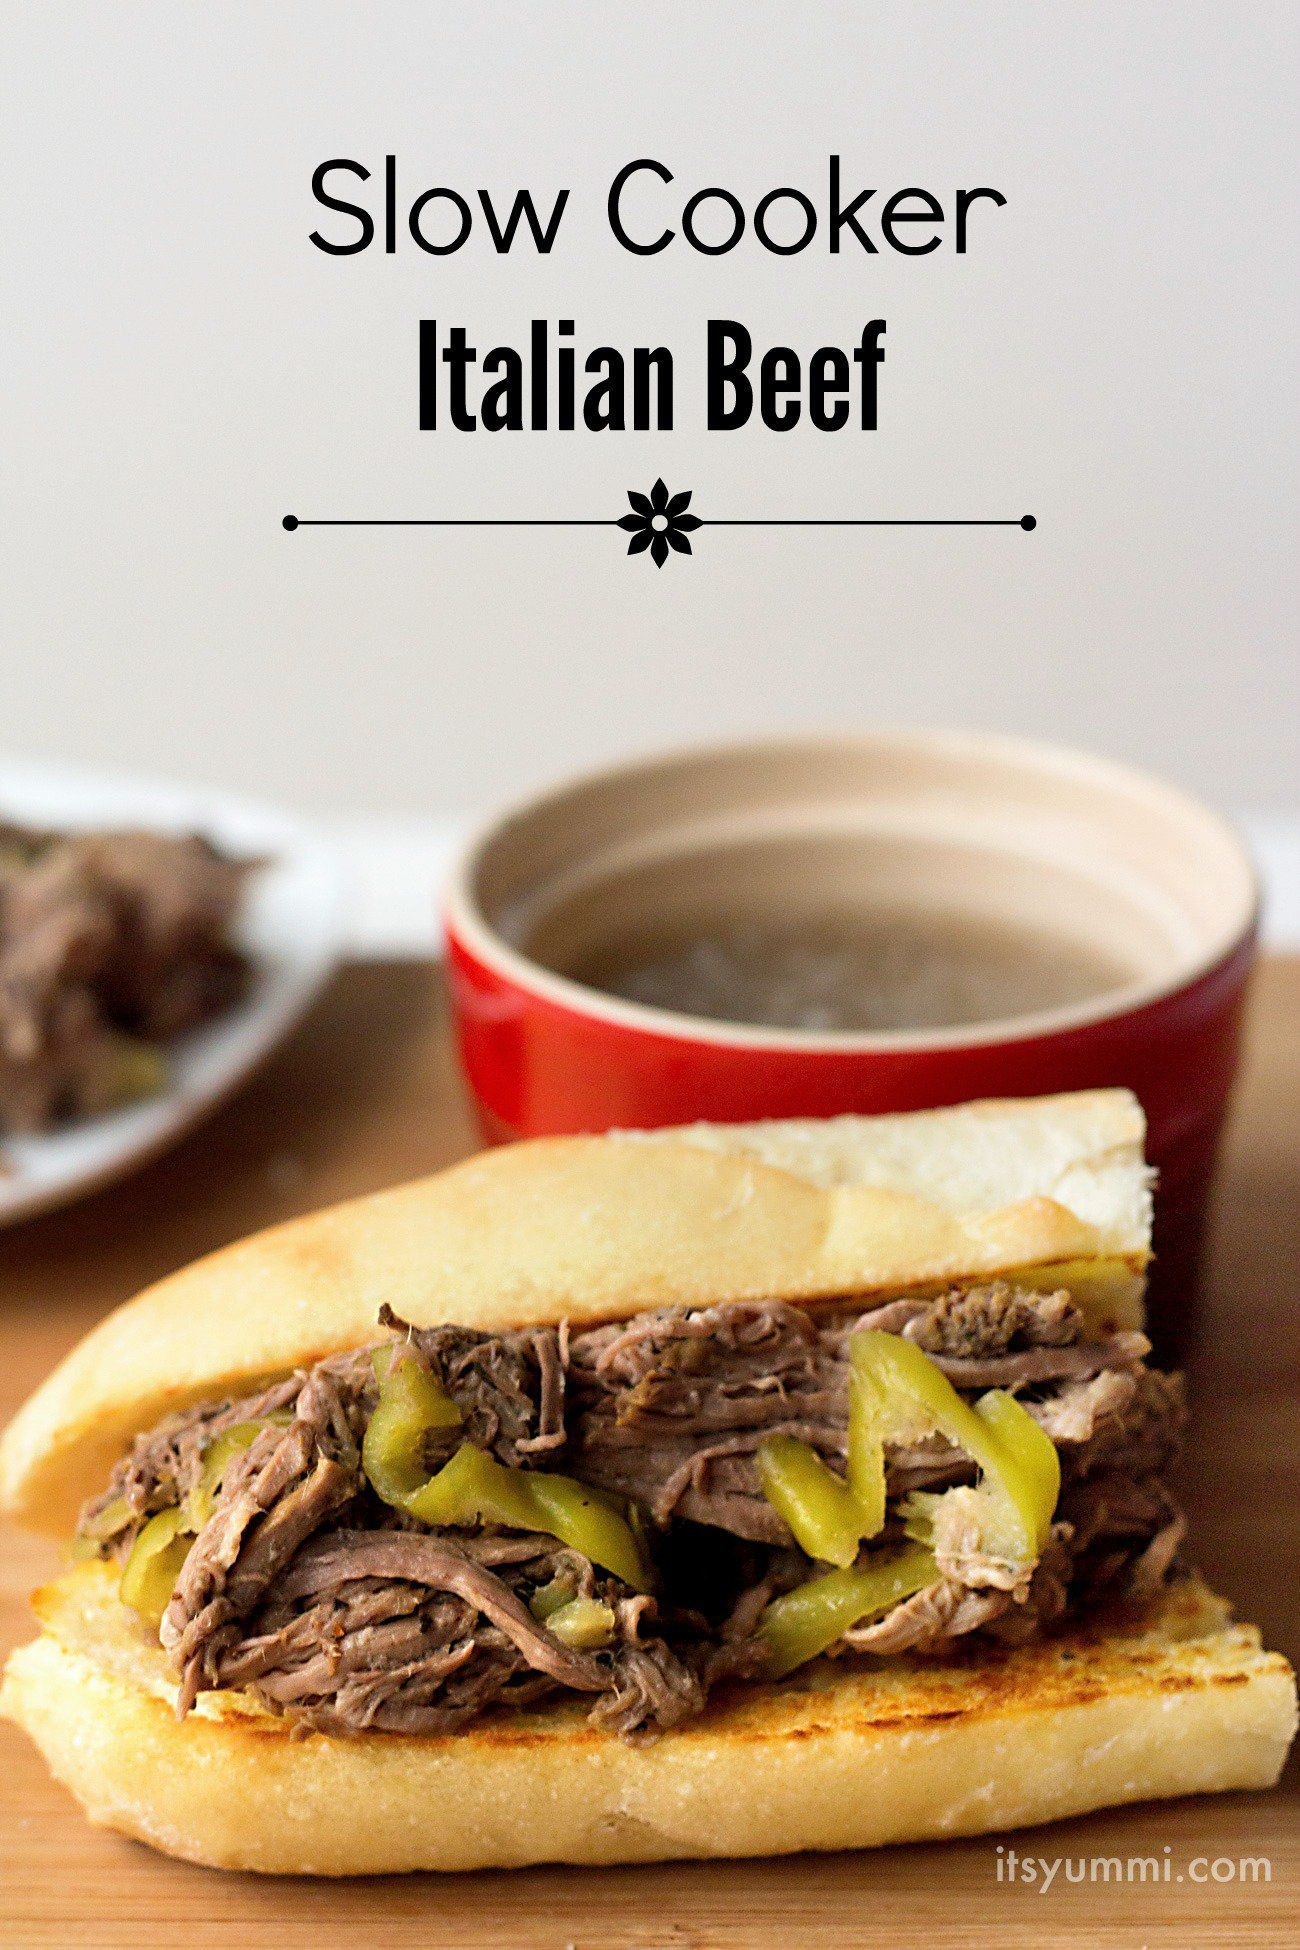 Easy Slow Cook Italian Beef Recipe  This is the best single dish I39ve ever had  Easy Slow Cook Italian Beef Recipe  This is the best single dish Ive ever had